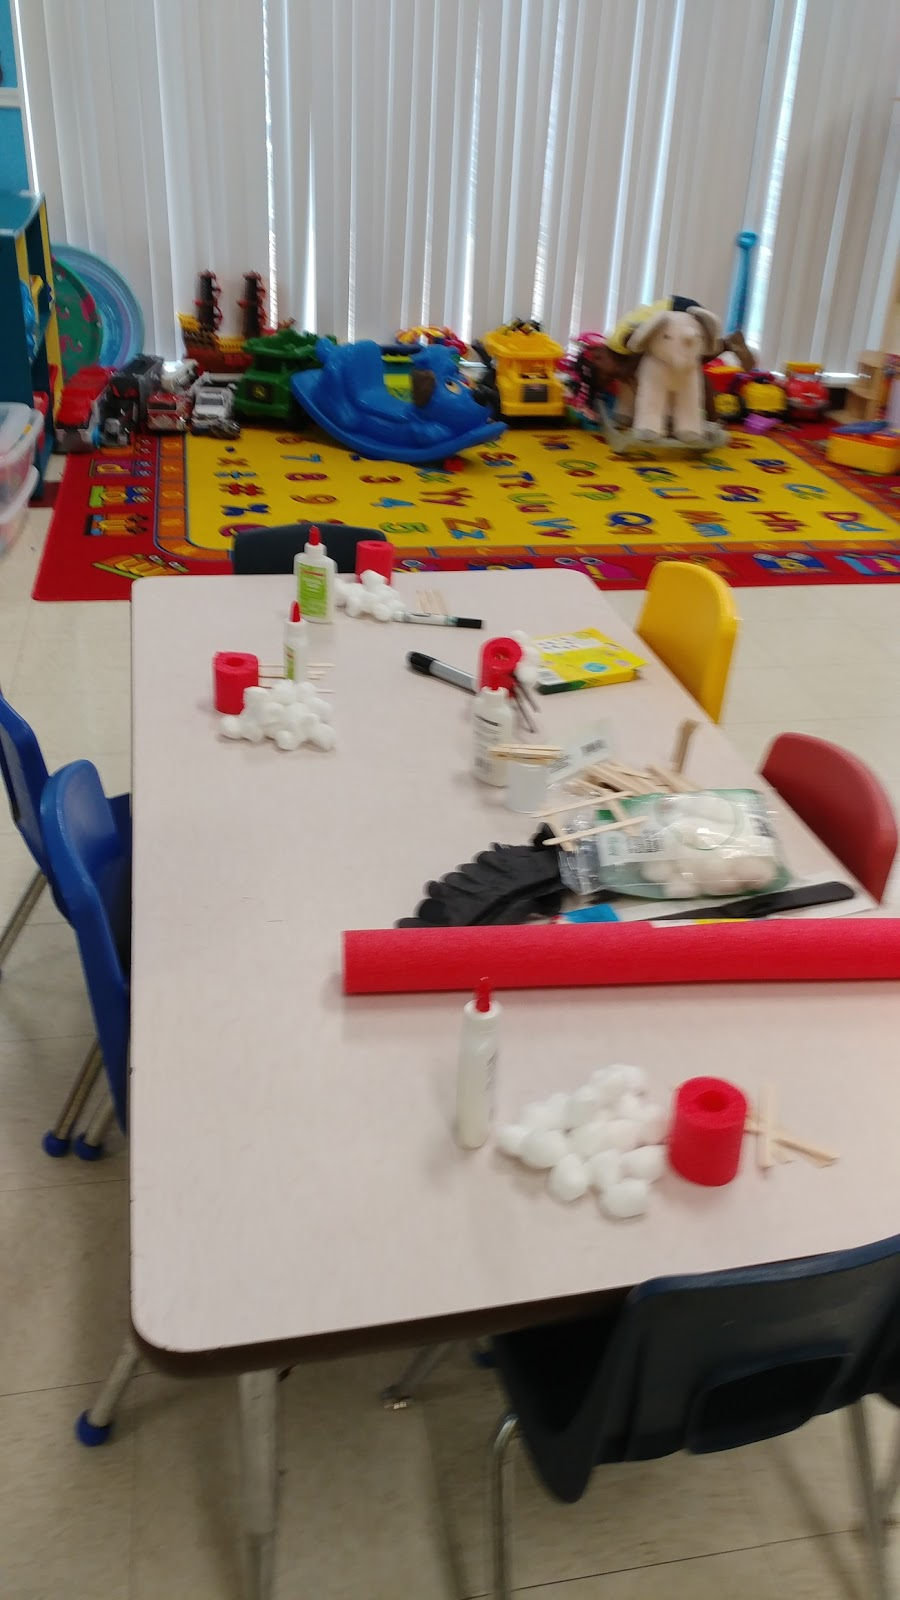 The Play Pin Daycare Corp - point of interest  | Photo 5 of 10 | Address: 4753 W Washington Blvd, Chicago, IL 60644, USA | Phone: (773) 688-5445